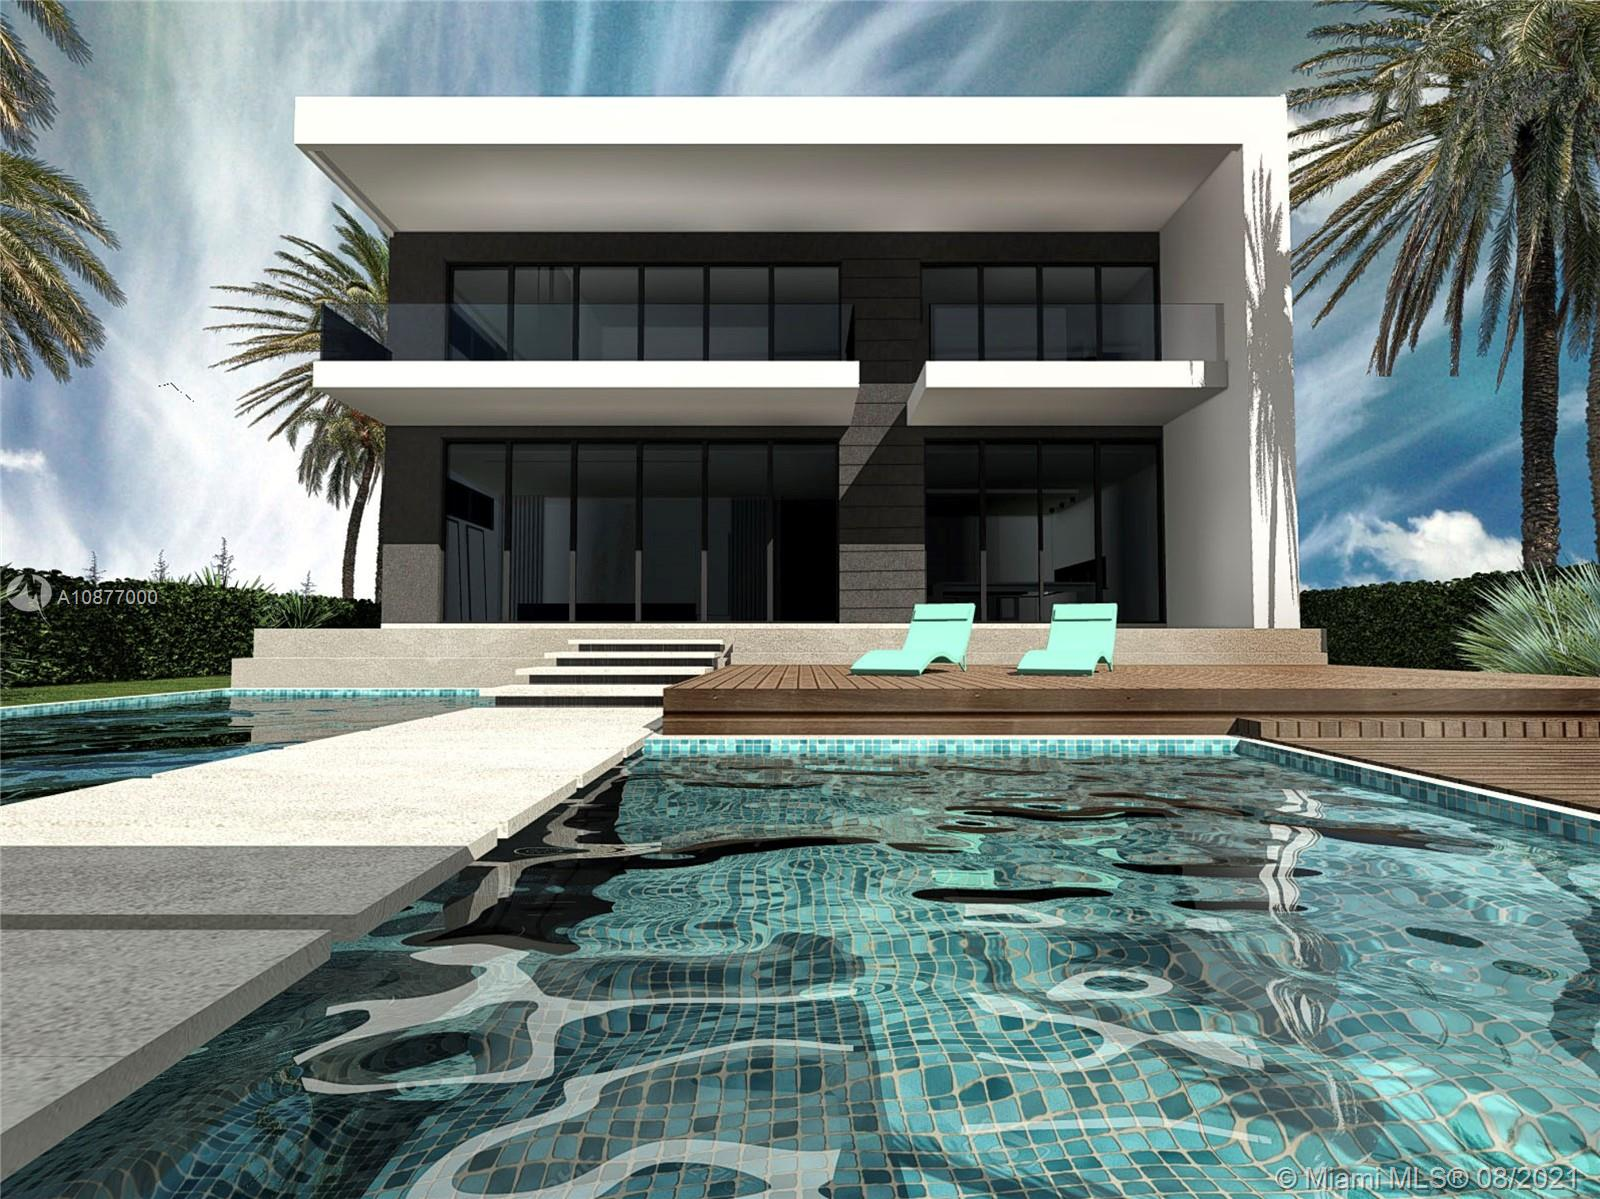 Architecturally stunning luxury home under construction available Fall 2020! Perfectly situated on a quiet street along the prestigious Miami Beach Golf Club. This two-story 5 BD / 5.5 BA home boasts 4,375 SQ FT of living area and spares no details. Enjoy seamless indoor/outdoor living spaces, high ceilings, and natural light throughout. Amenities include an outdoor pool and deck, spacious den, balconies, two-car garage, lush landscaping, and an expansive rooftop terrace overlooking the pool area and the Miami Beach golf course that is perfect for entertaining! Take advantage of this exciting opportunity to own this newly constructed 5,304 SQ FT home on 10,400 SQ FT Lot. Due for completion in a month.